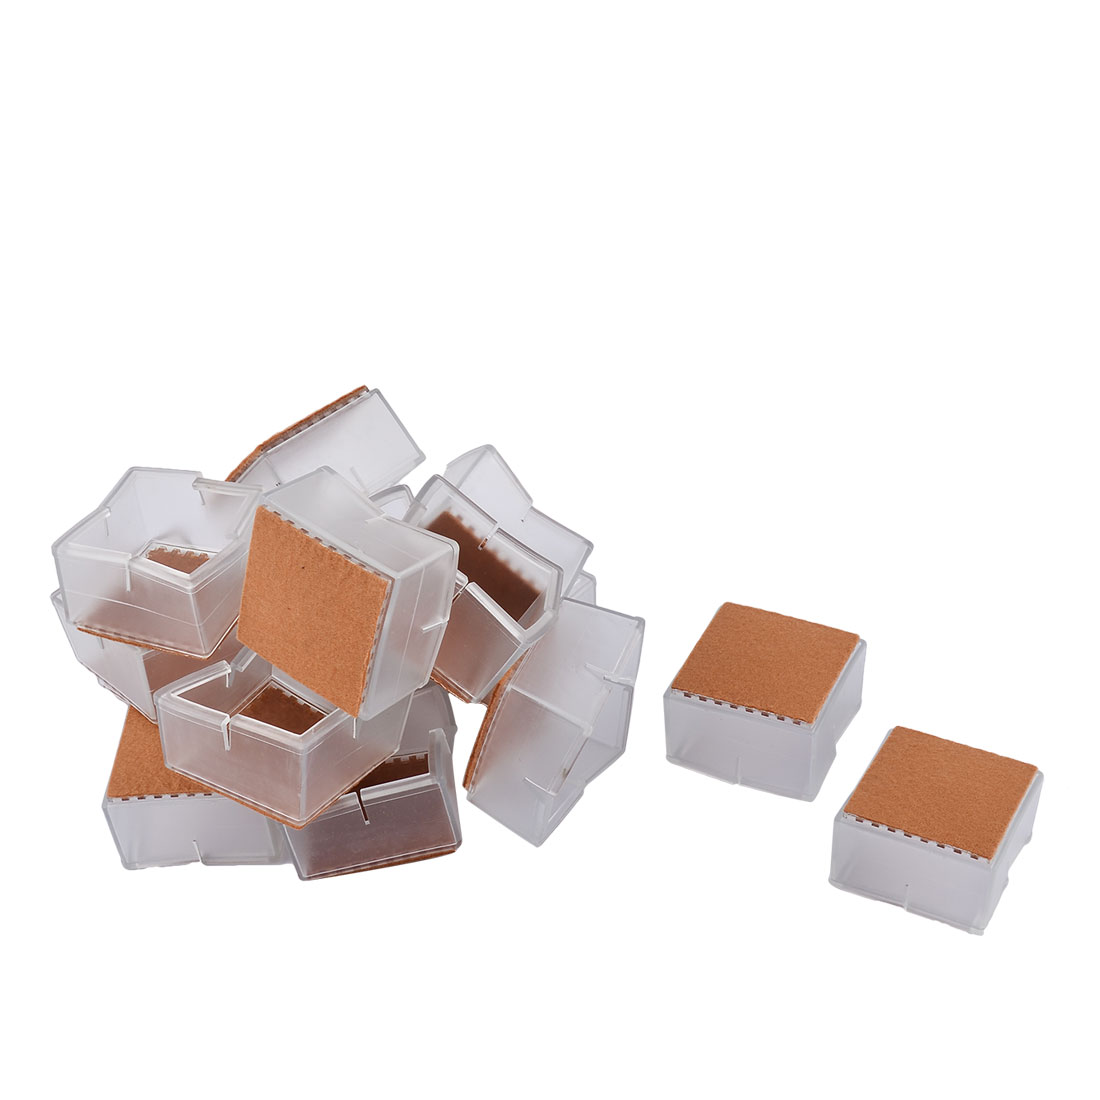 Silicone Square Shaped Floor Protecting Table Leg End Cap Cover Clear 5.5 x 5.5 x 3.4cm 16pcs